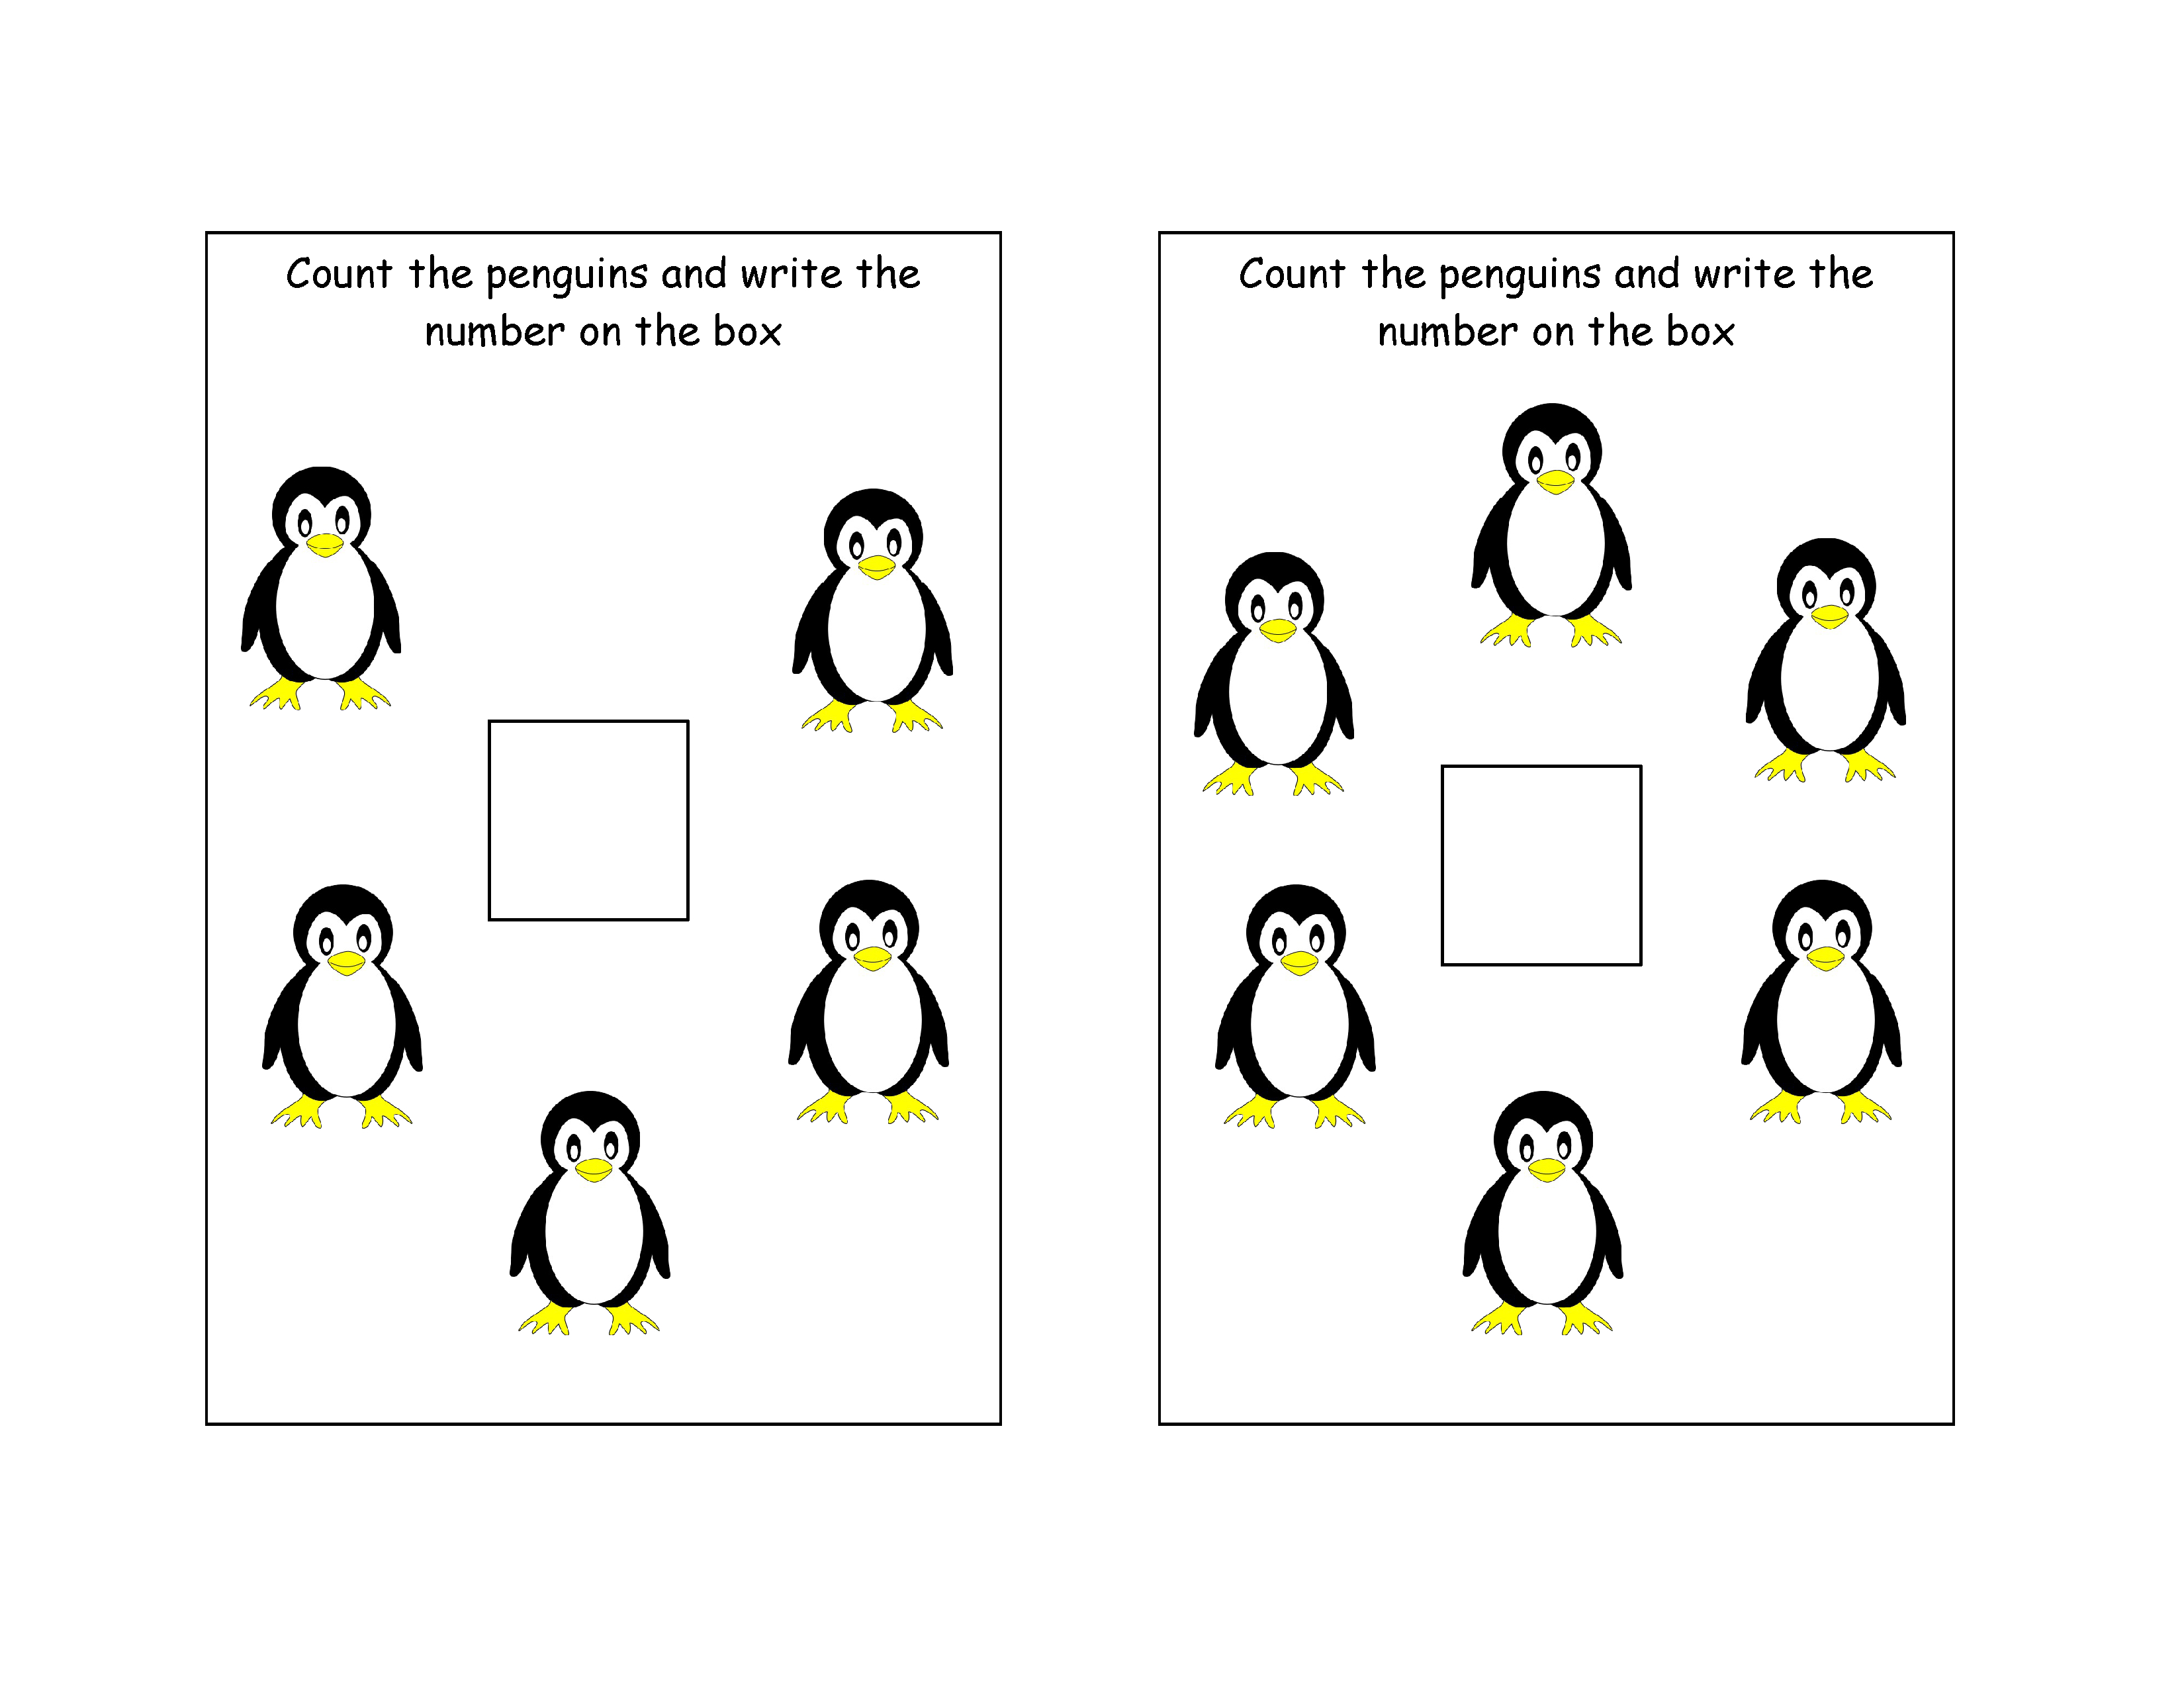 Free Printable - Counting Penguins Mini Worksheet | Free Printable - Free Printable Penguin Books